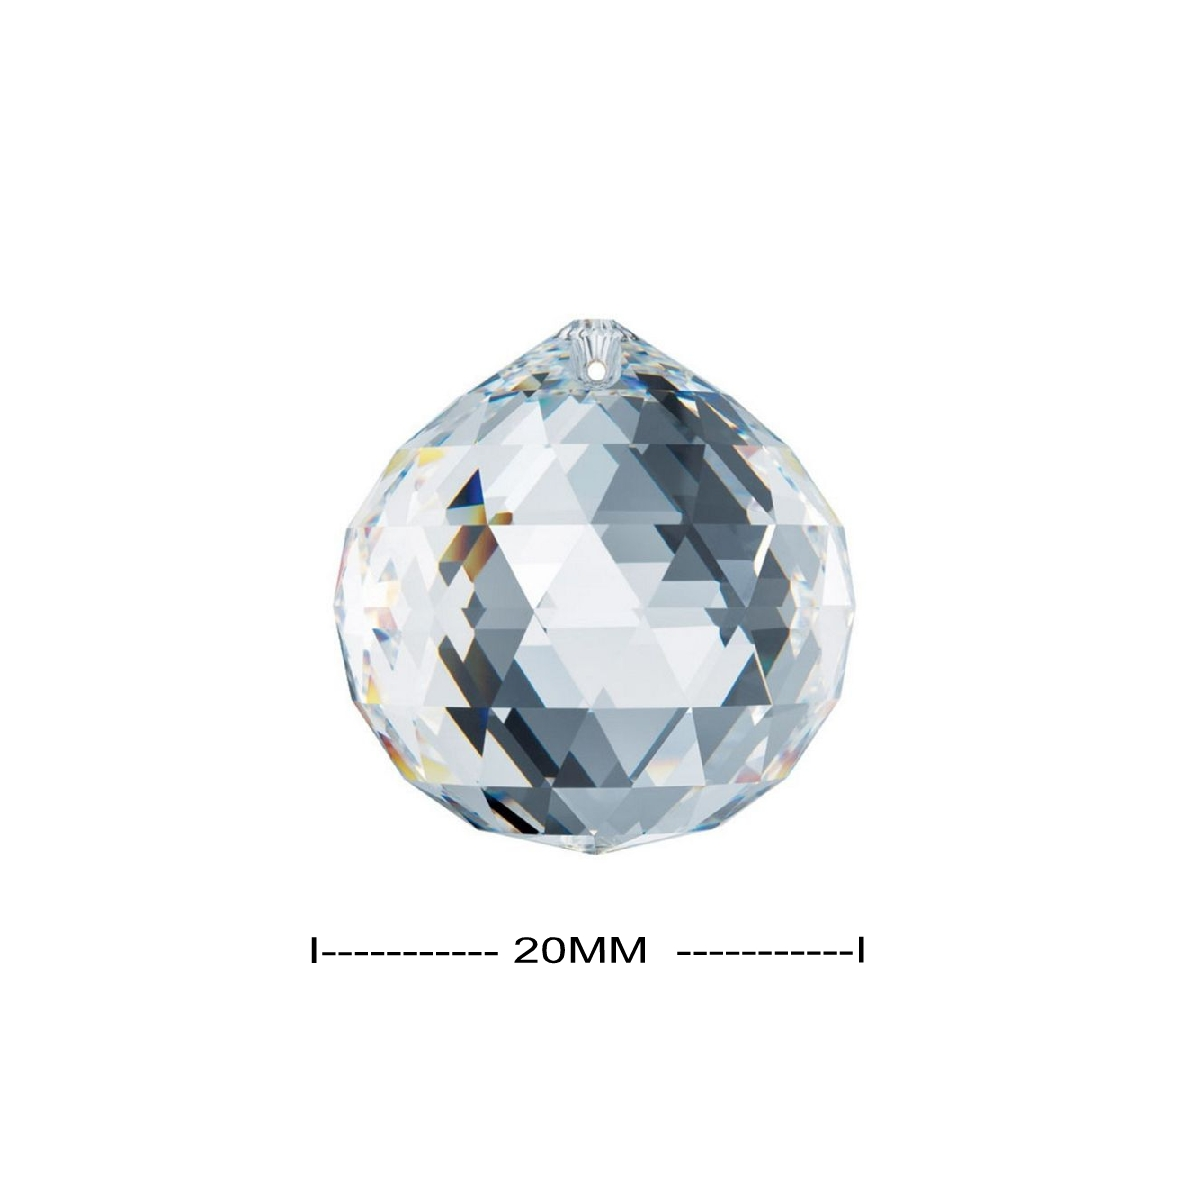 Swarovski 20mm Infamous Strass Clear Crystal Ball Prism 8558-20